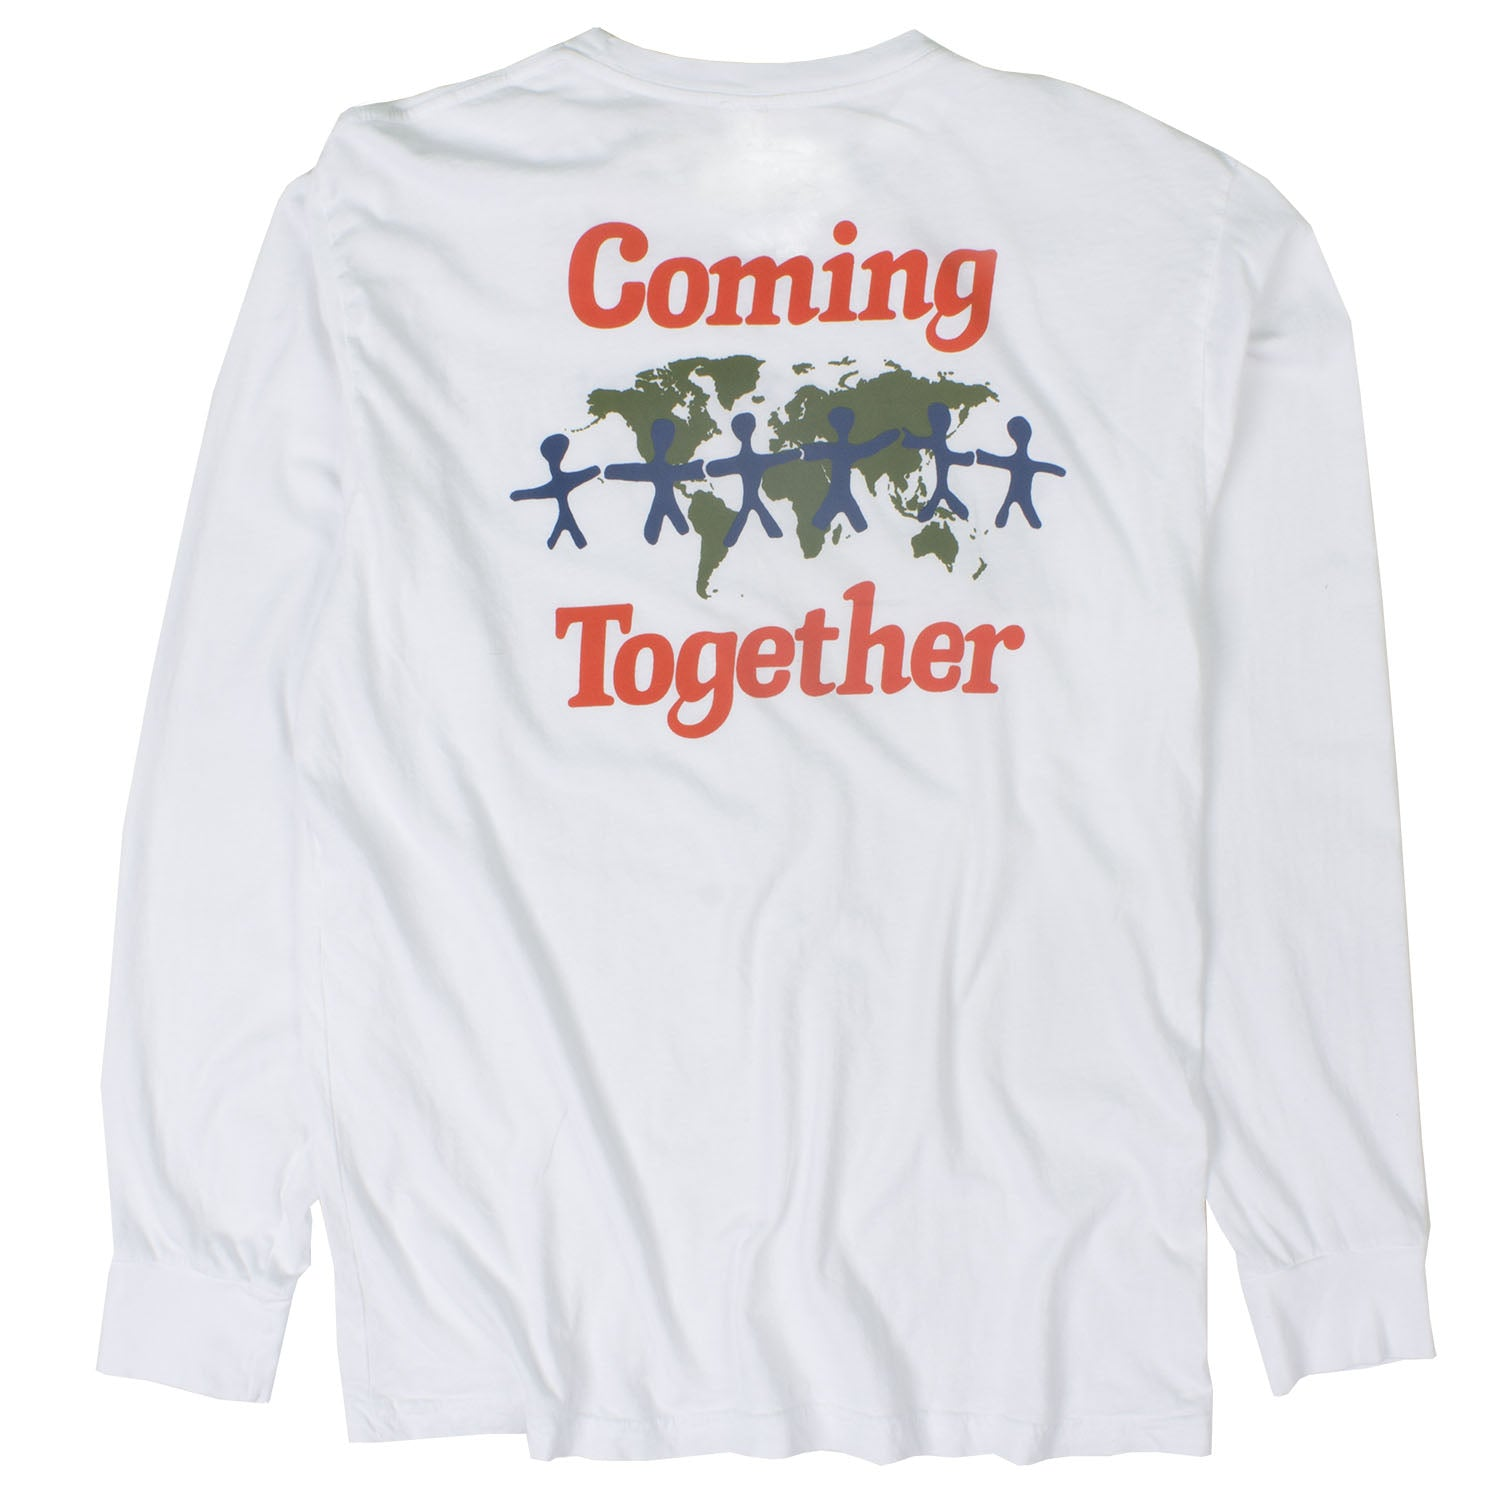 4ddb65d45 Coming Together Lets Talk L/S white front and back printed graphic tee